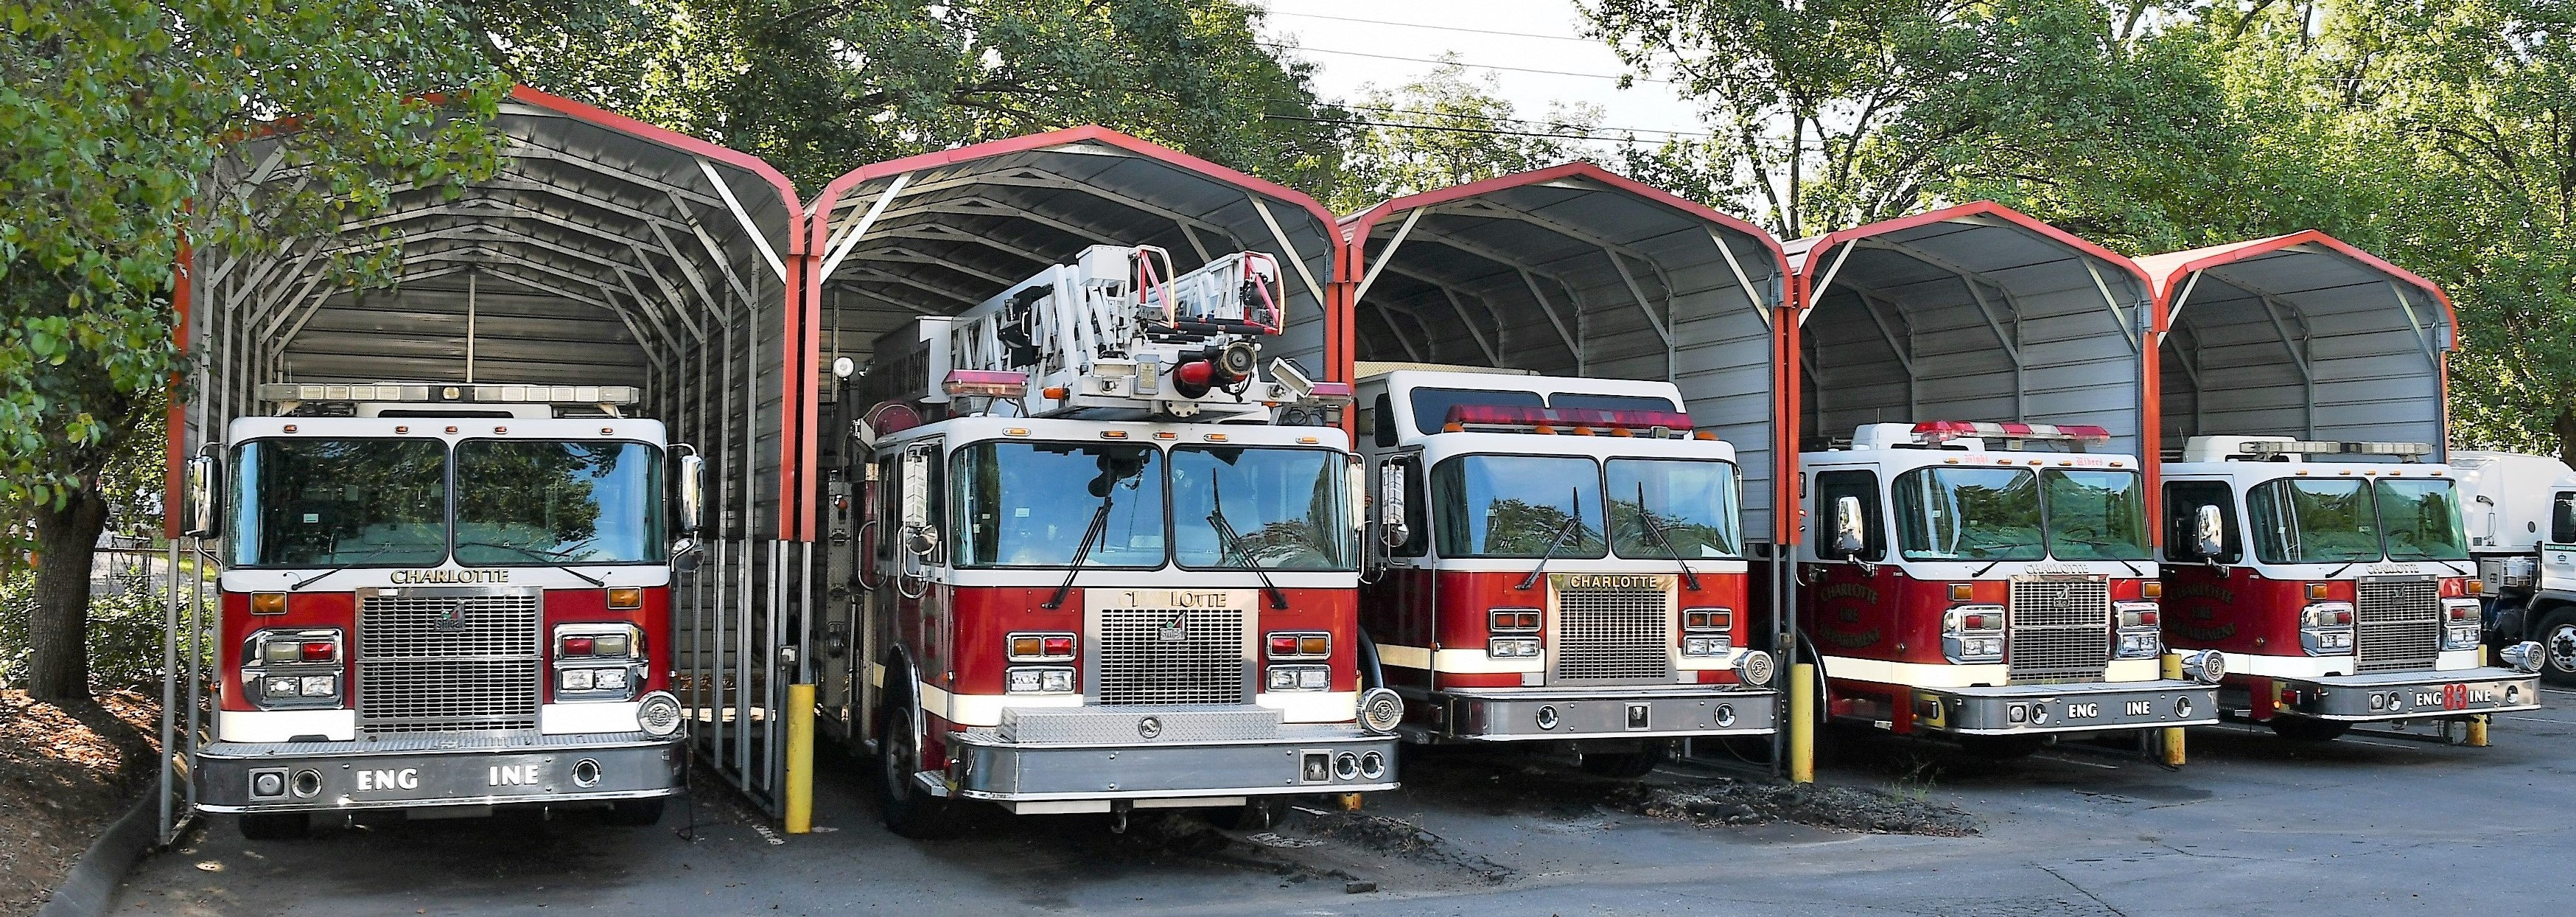 Fire engines at Otts Street Fleet facility